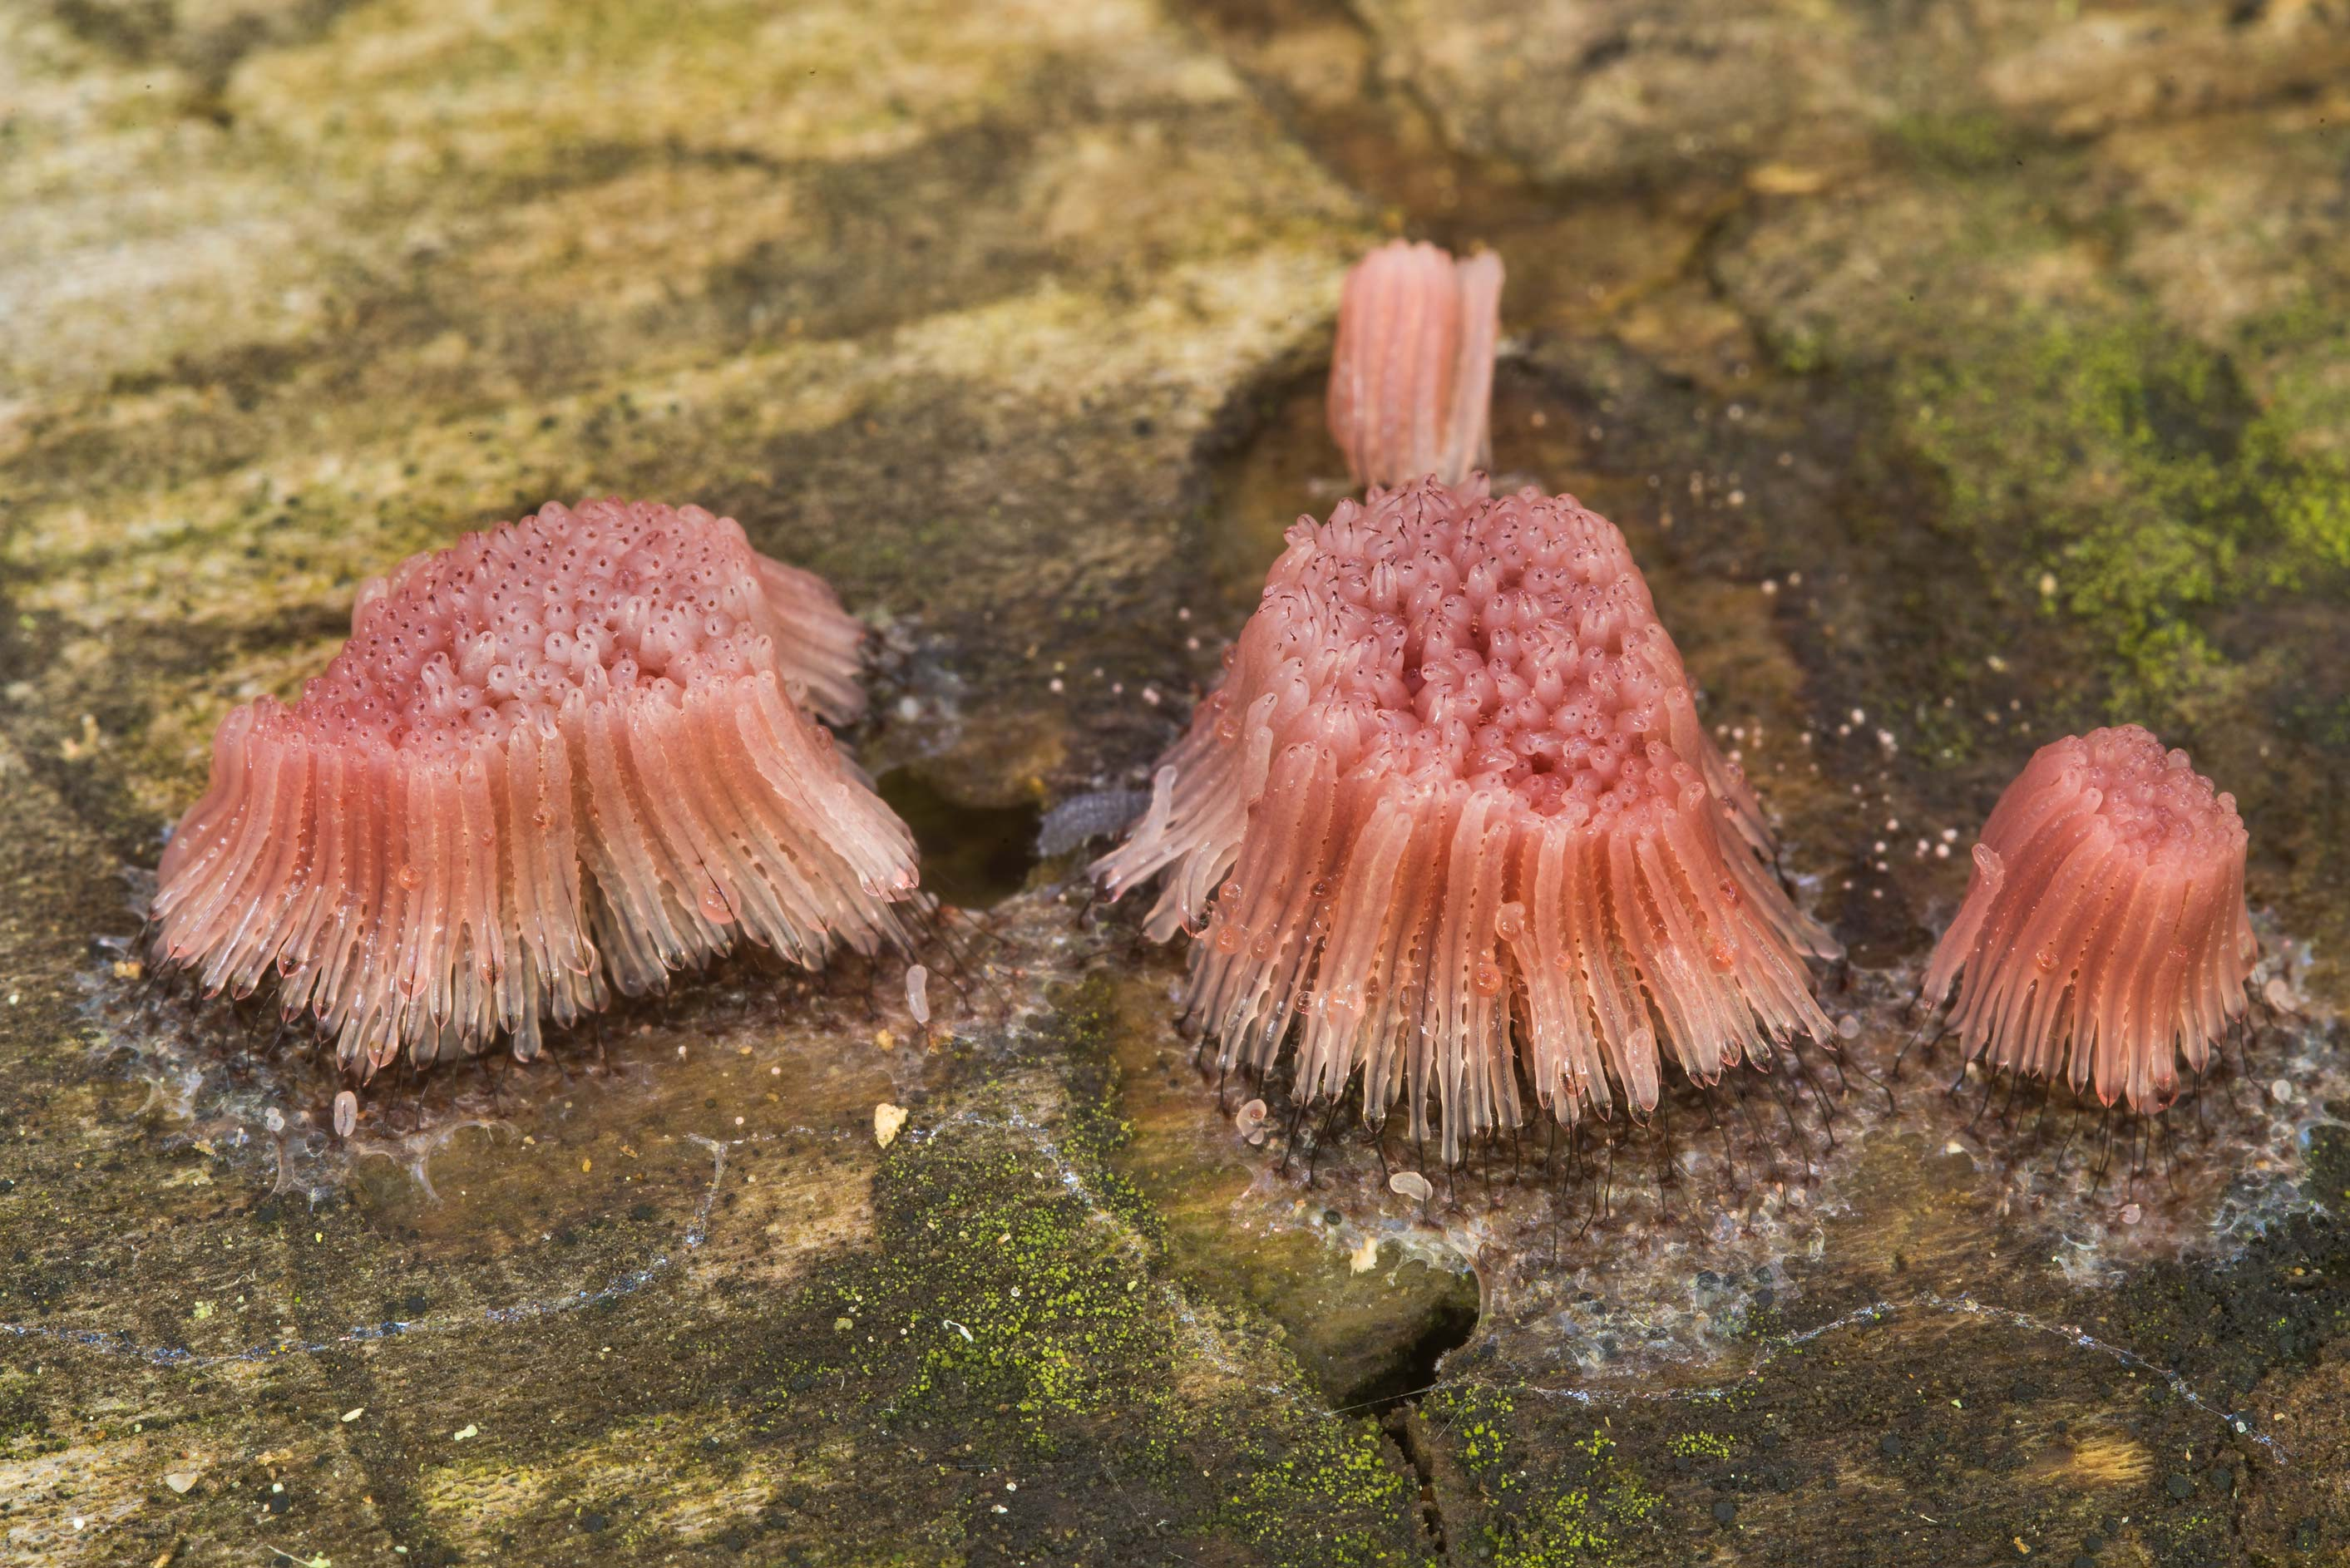 Sporangia of slime mold Stemonitis fusca on a log...Creek Park. College Station, Texas